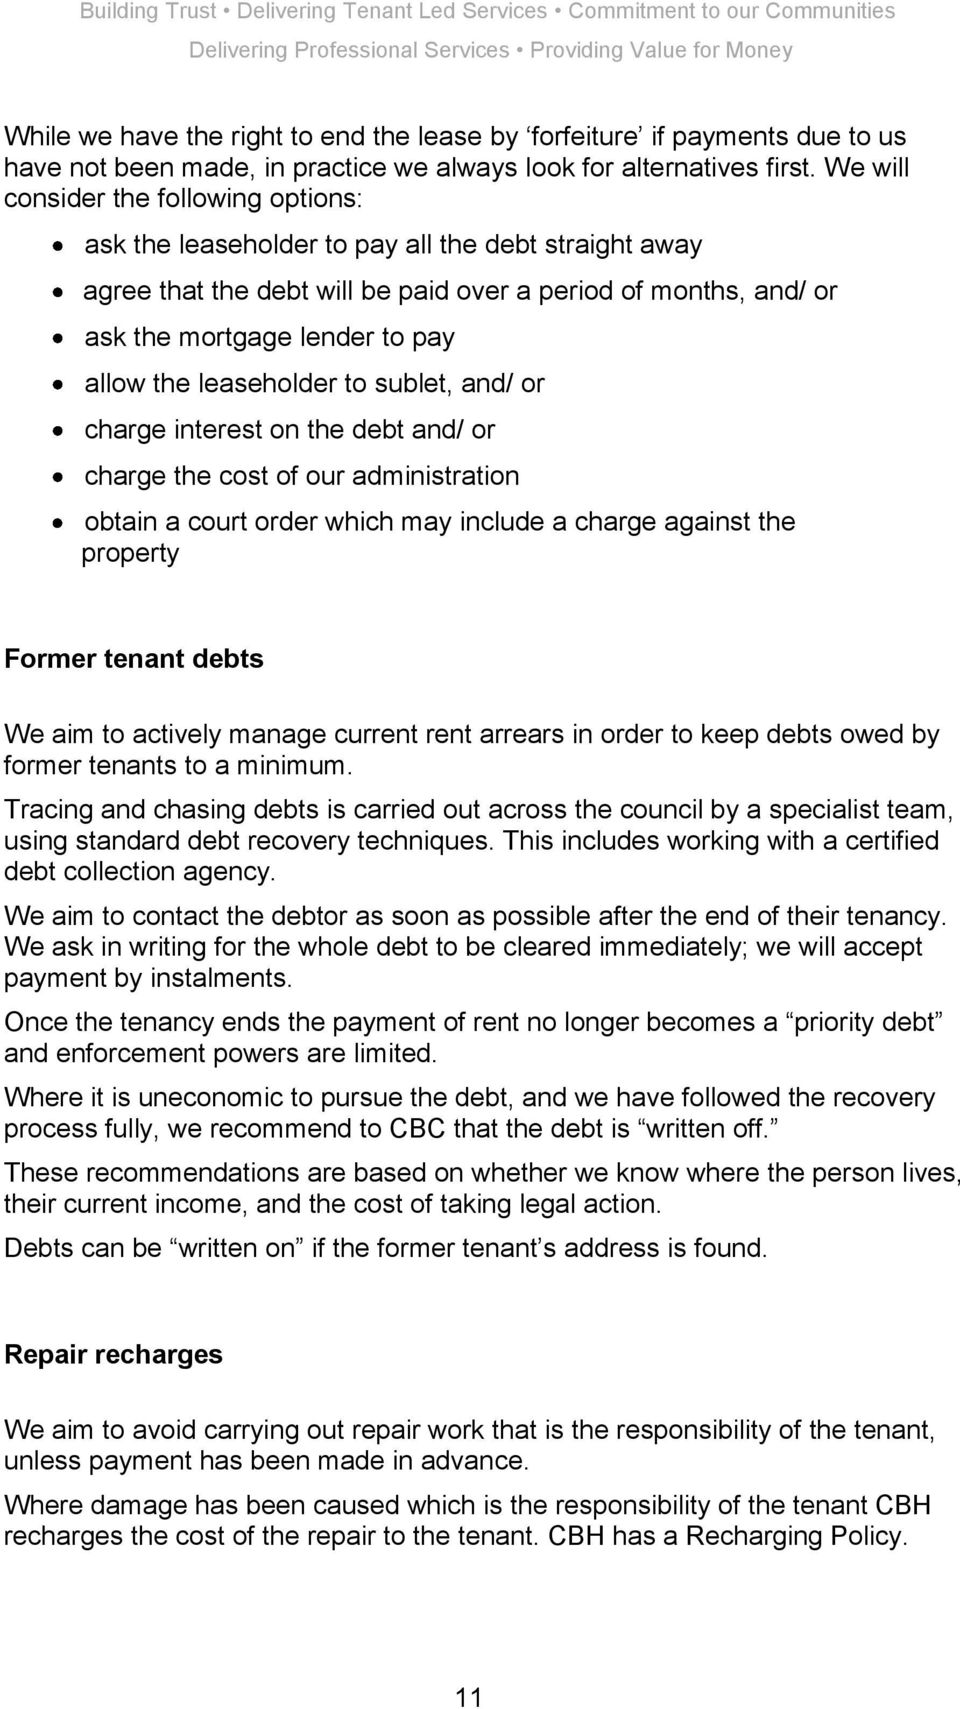 the leaseholder to sublet, and/ or charge interest on the debt and/ or charge the cost of our administration obtain a court order which may include a charge against the property Former tenant debts